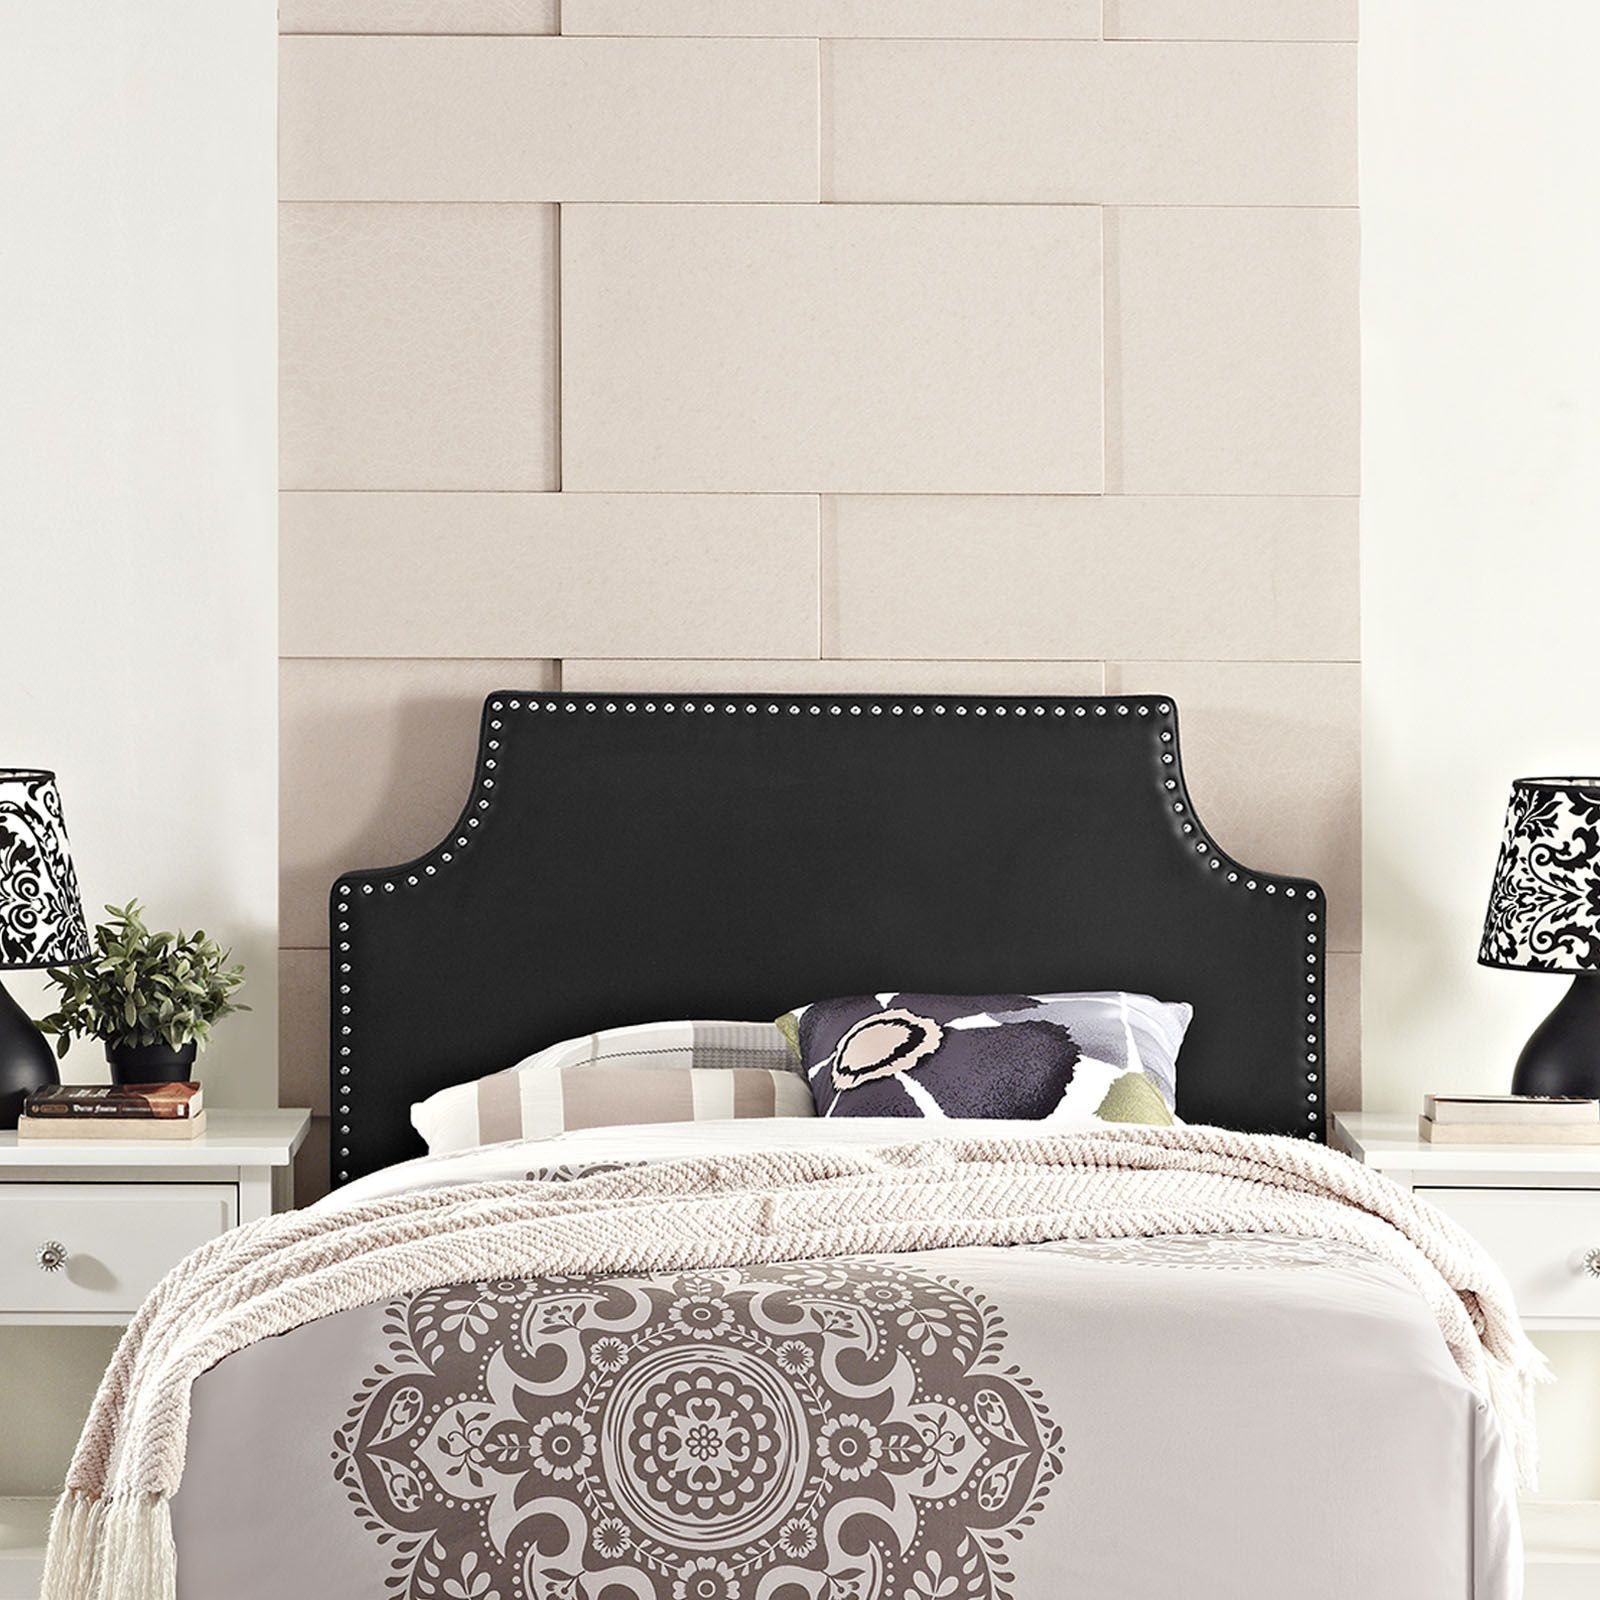 Laura Twin Vinyl Headboard, Black - Enhance your bedroom with the ...